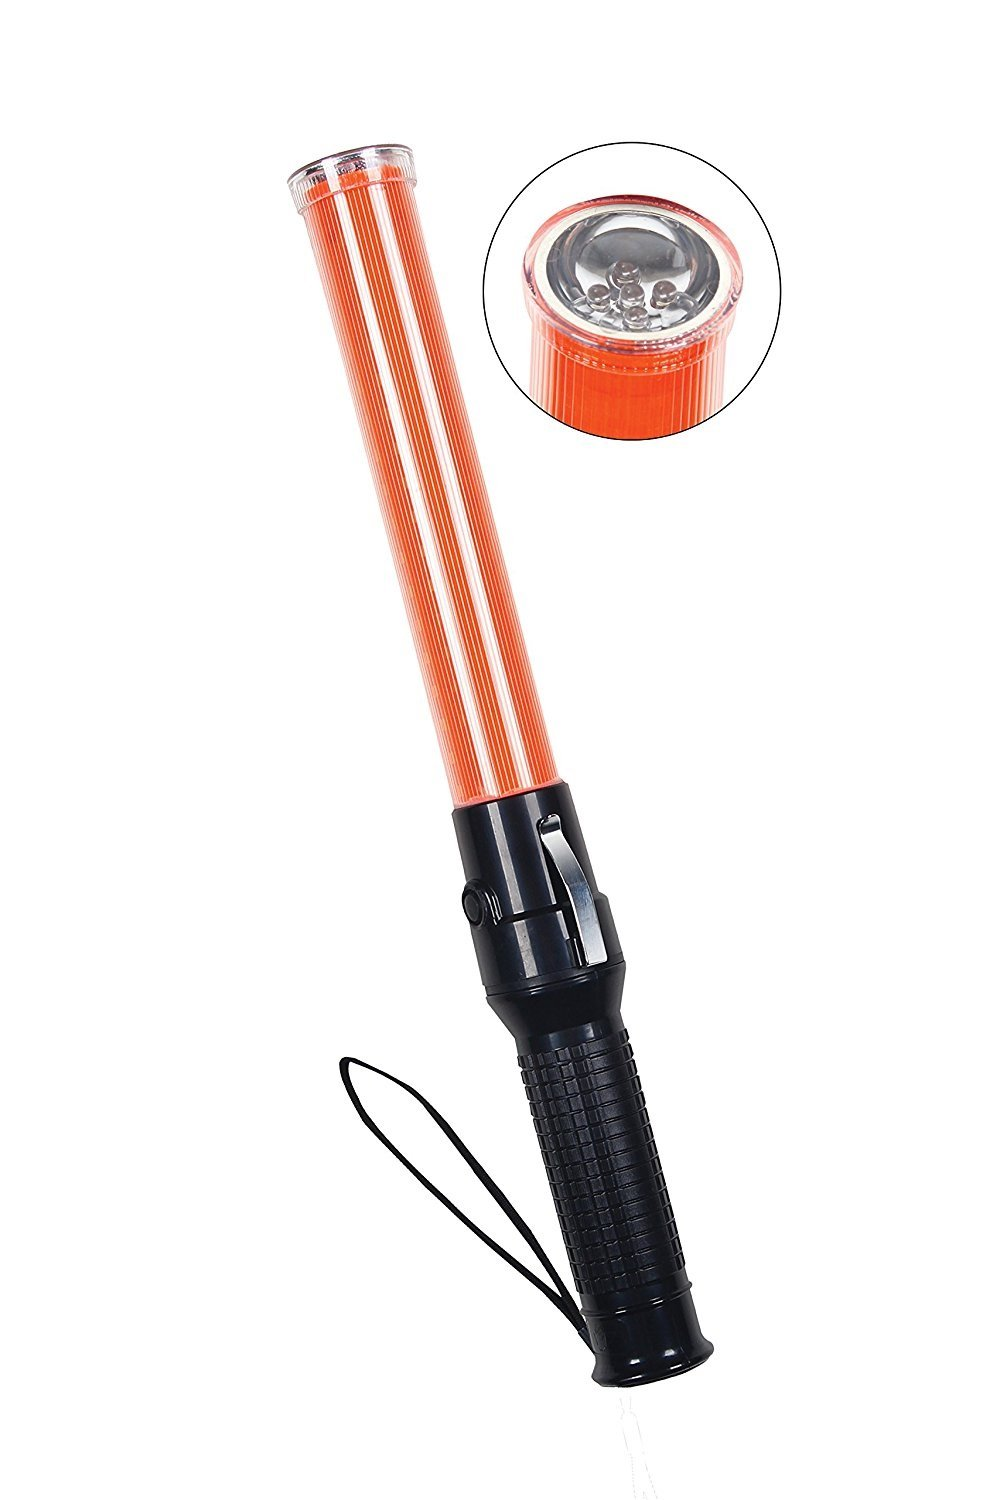 Safety Depot Wholesale Bulk 17.5-inch 6-Red LED, Strong Magnetic Base with Enhance Grip Handle Used for Marshalling and Traffic Wands 5-LED Flashlight (Case of 24)